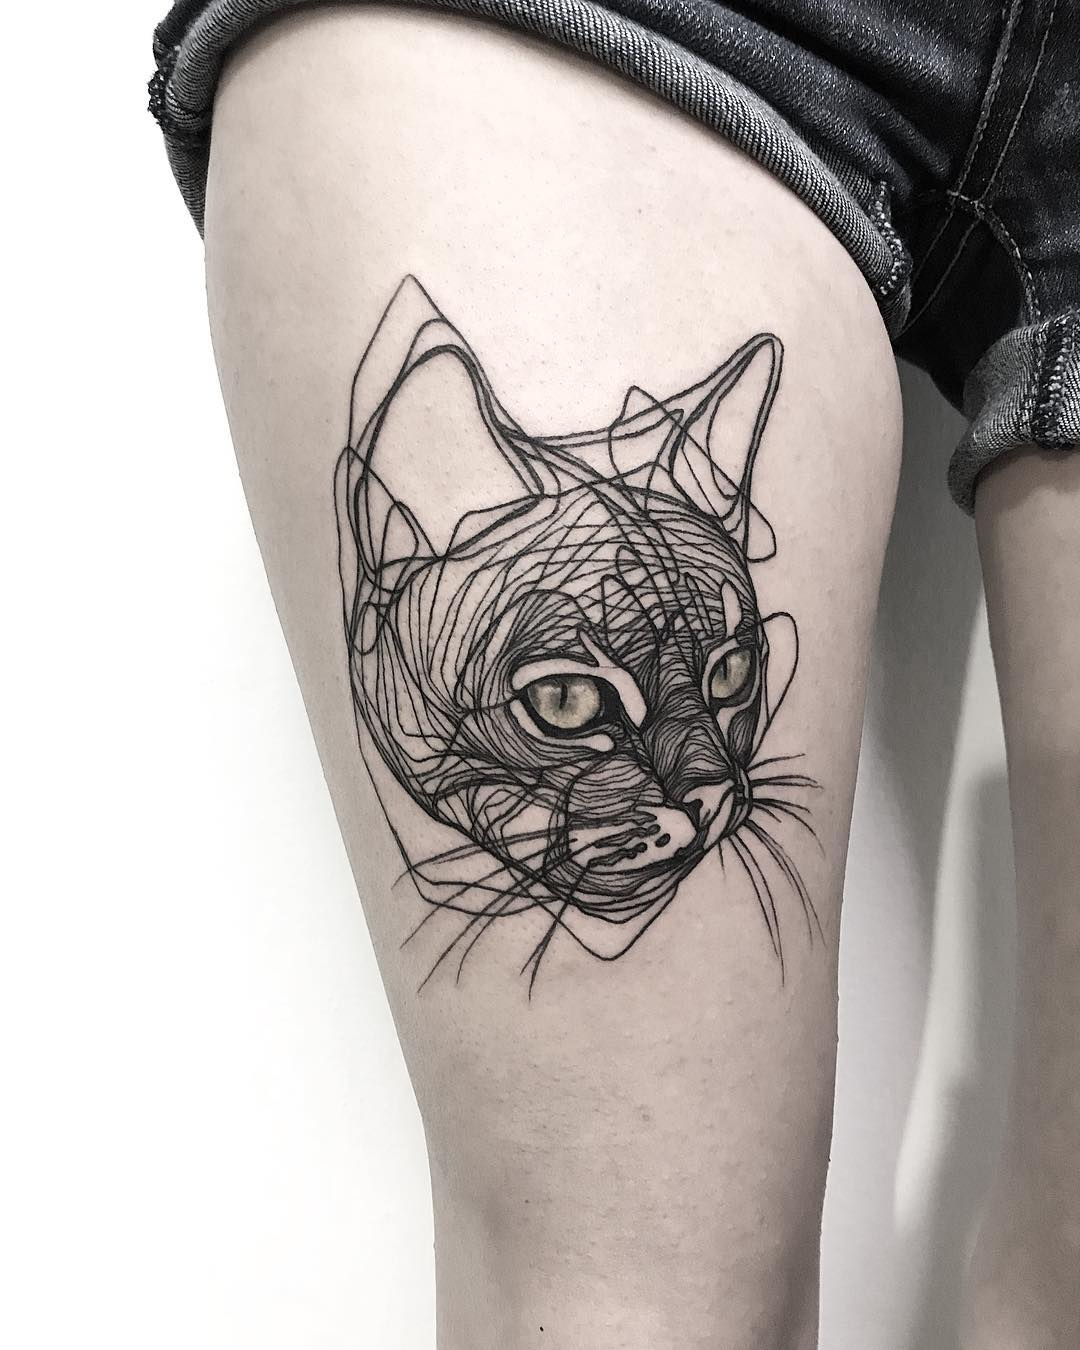 cat-tattoo-designs-meanings-spiritual-luck-2019